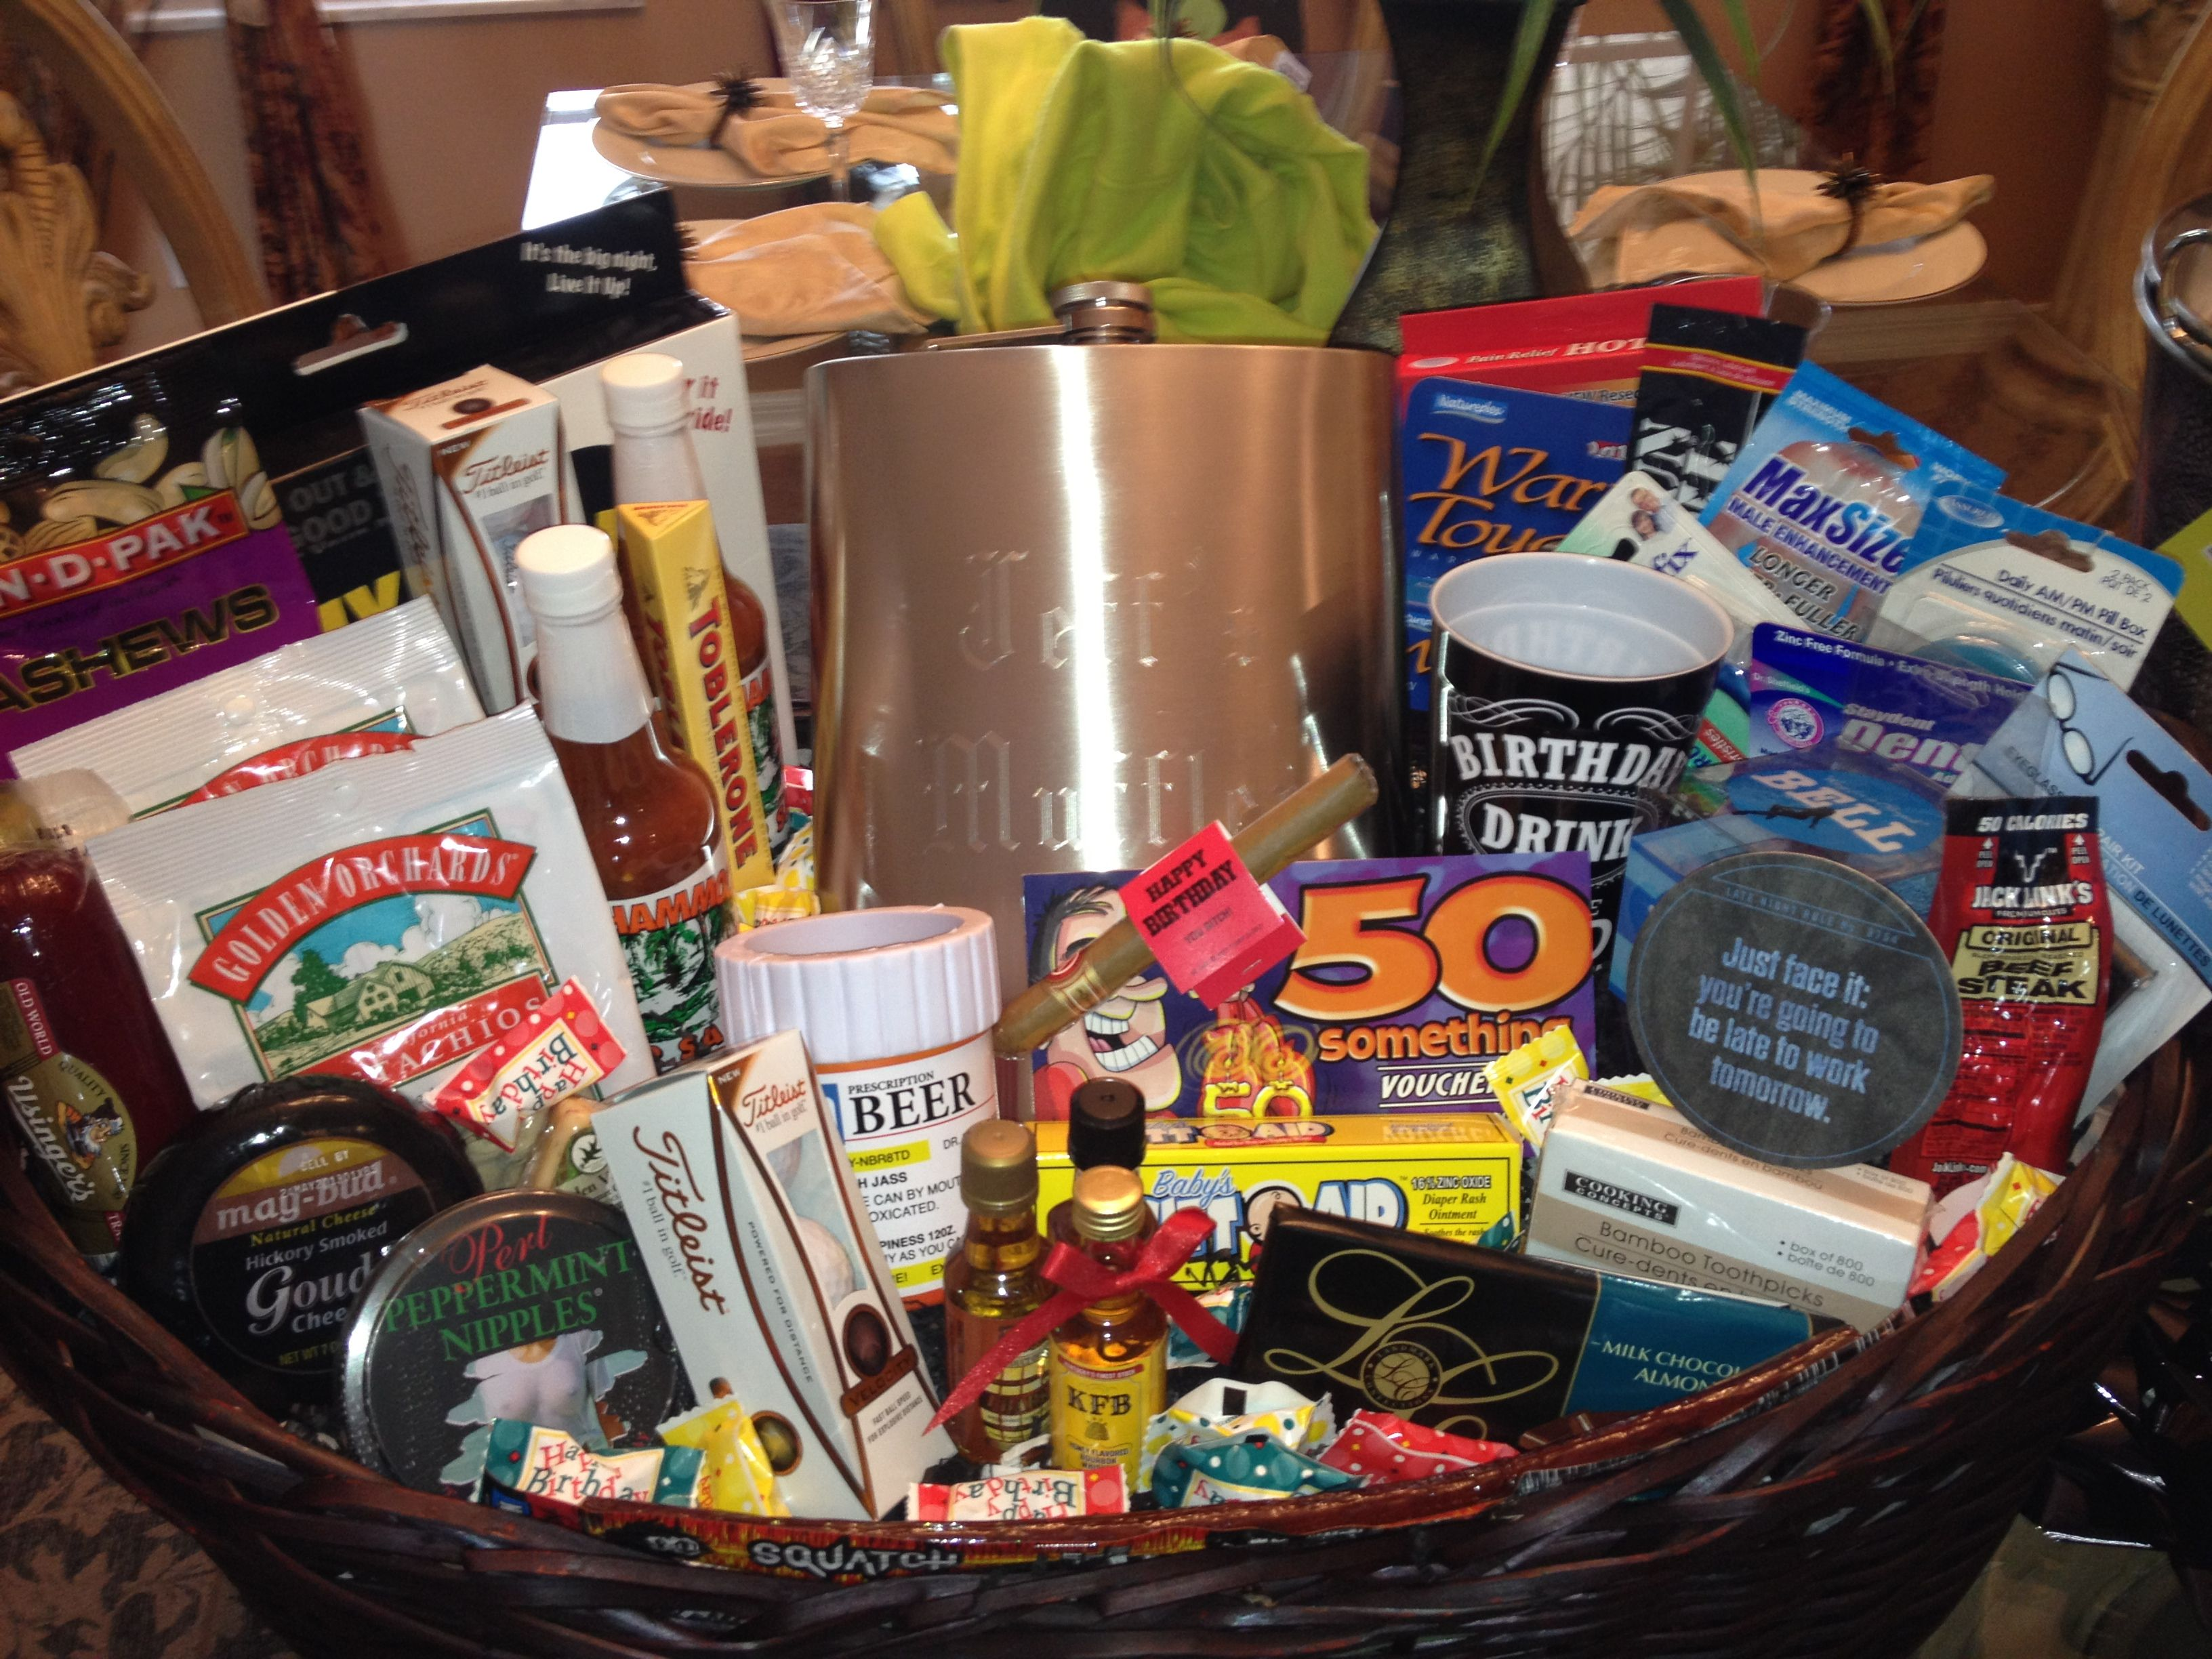 11 50th Birthday Gift Basket For Him Best Baskets Men From